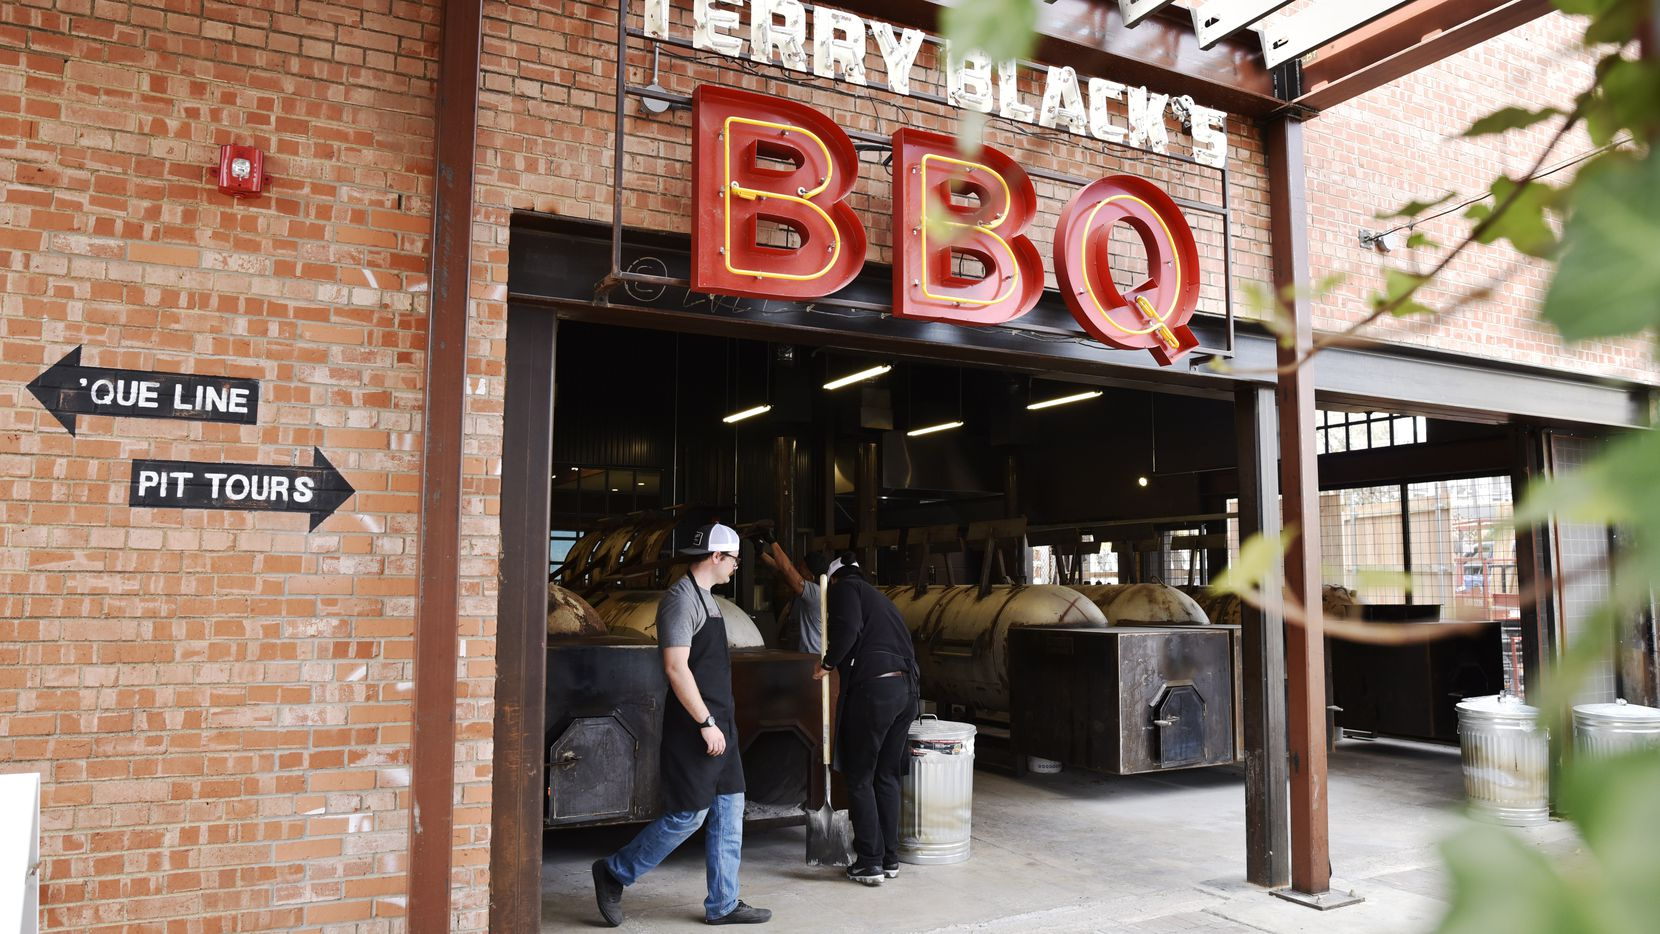 Terry Black's Barbecue, which opened in late 2019 in Deep Ellum, is now selling its smoked meats in Tom Thumb grocery stores in Dallas.